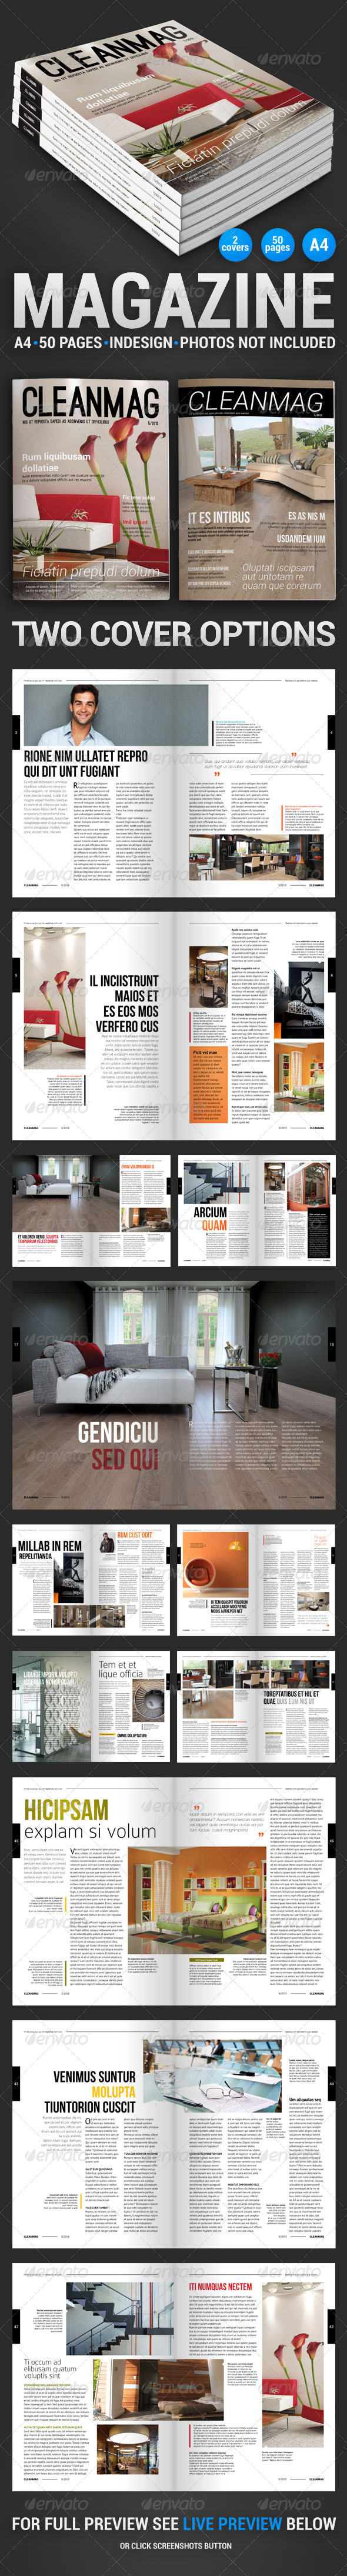 CleanMag 50 pages magazine - Magazines Print Templates